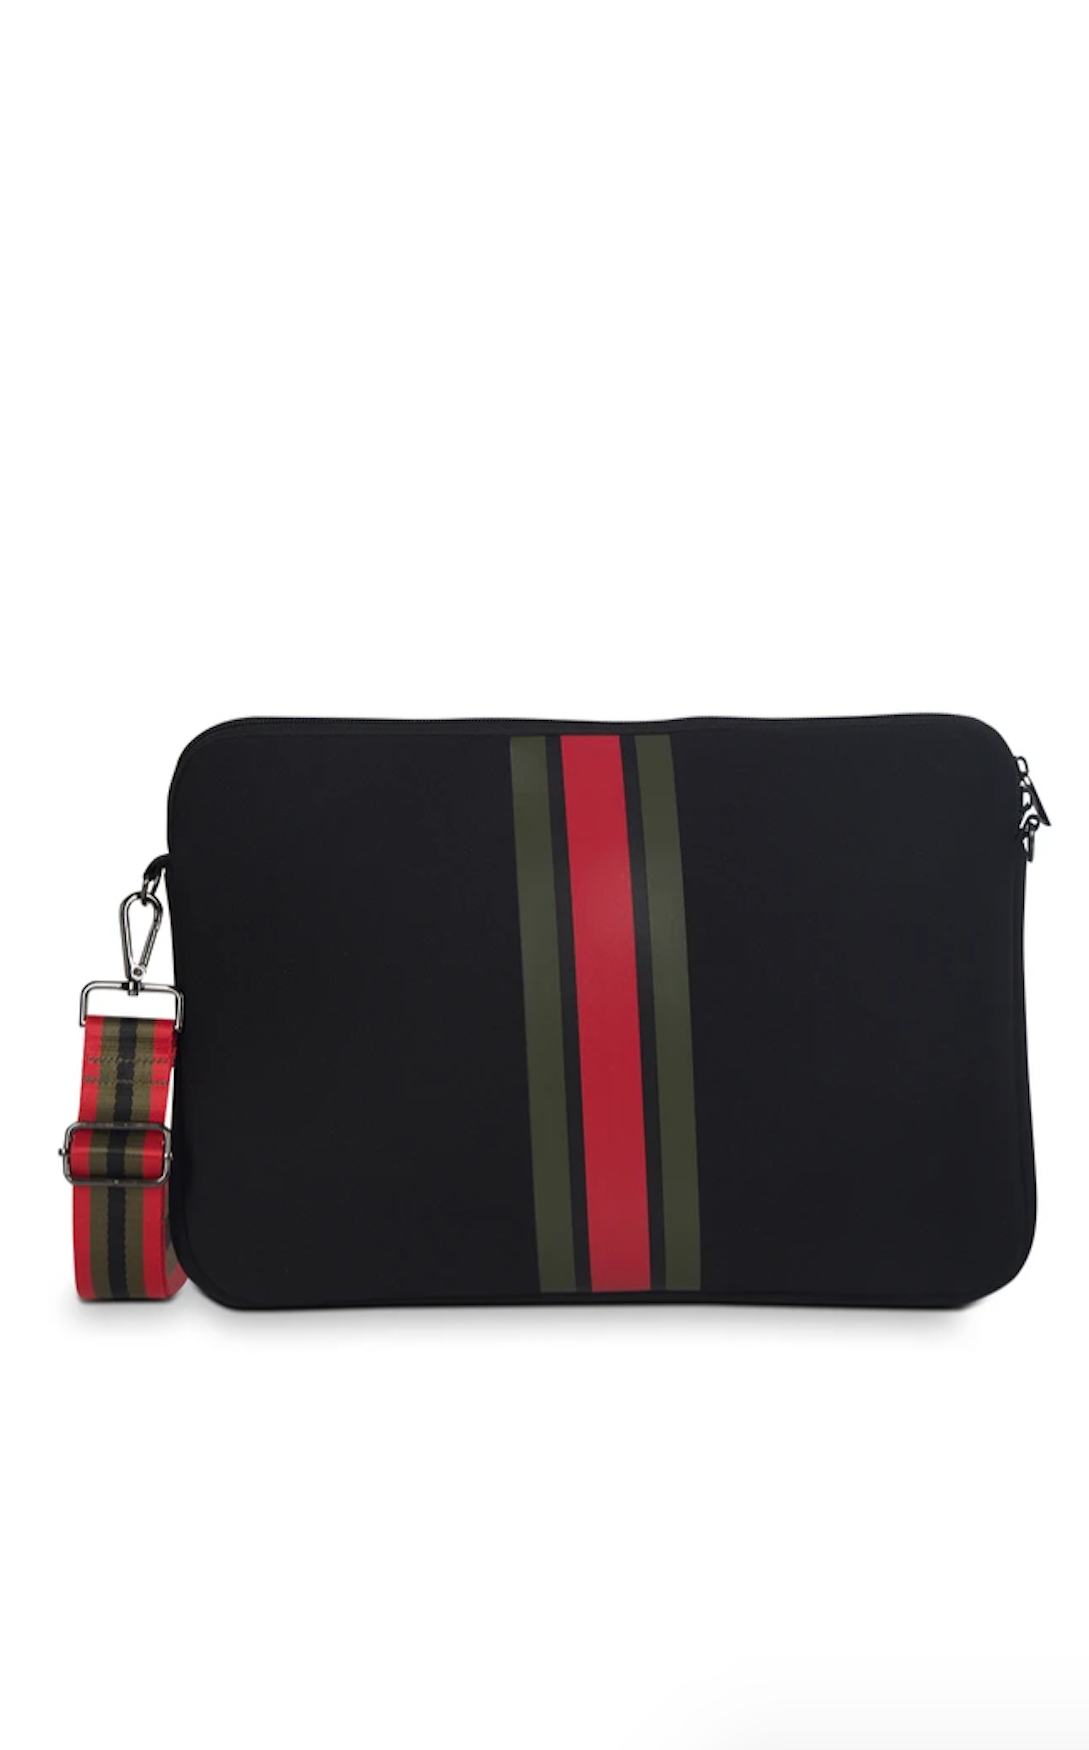 PARKER LAPTOP CASE - BELLO